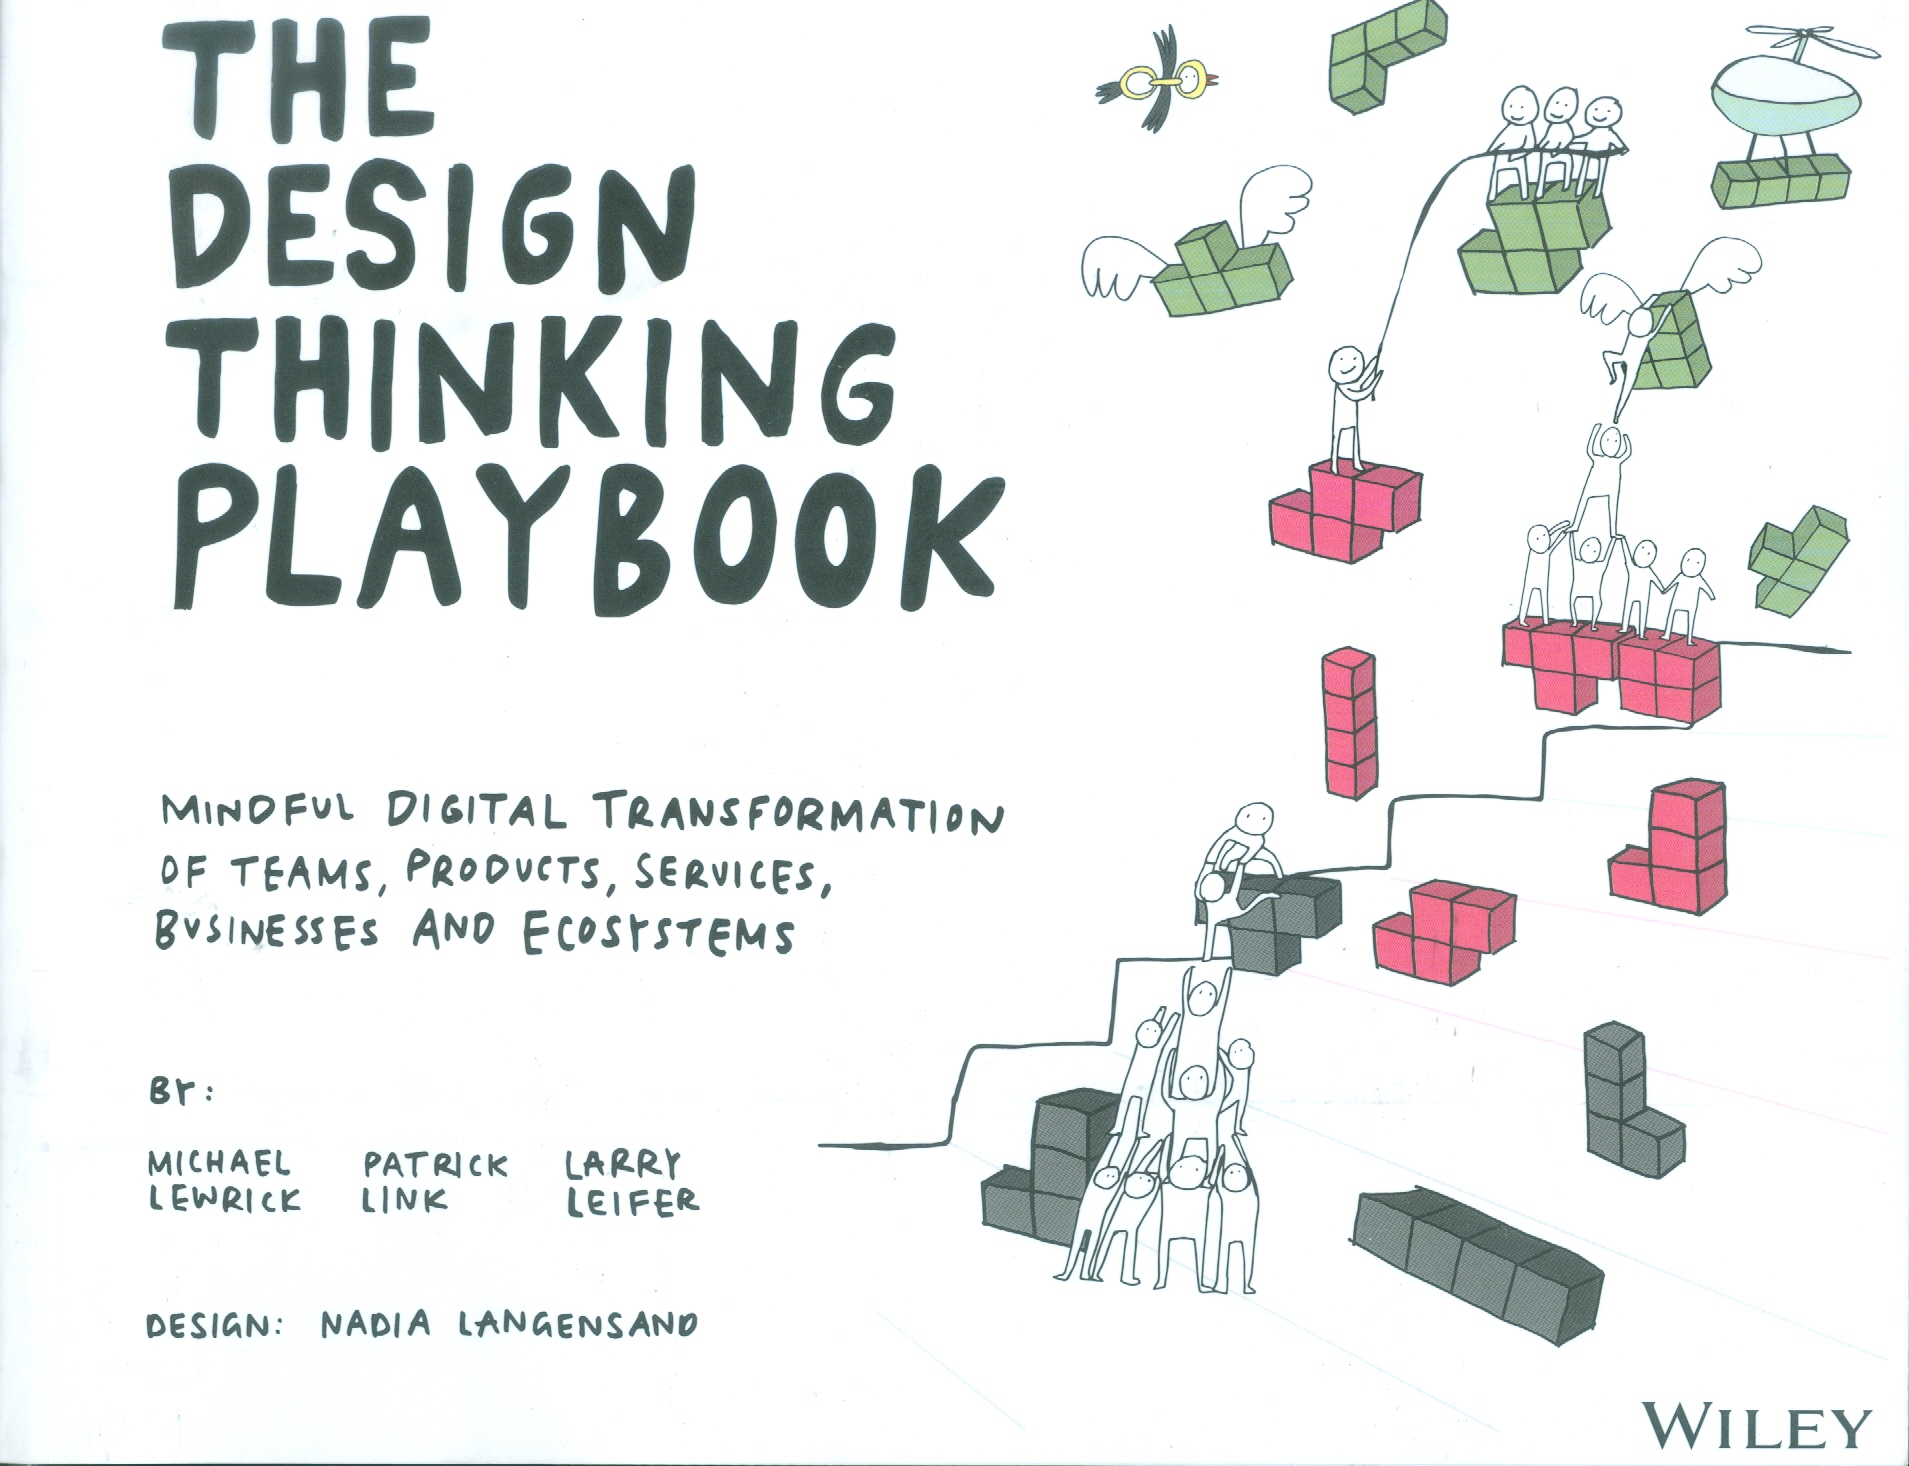 the design thinking playbook0001.jpg